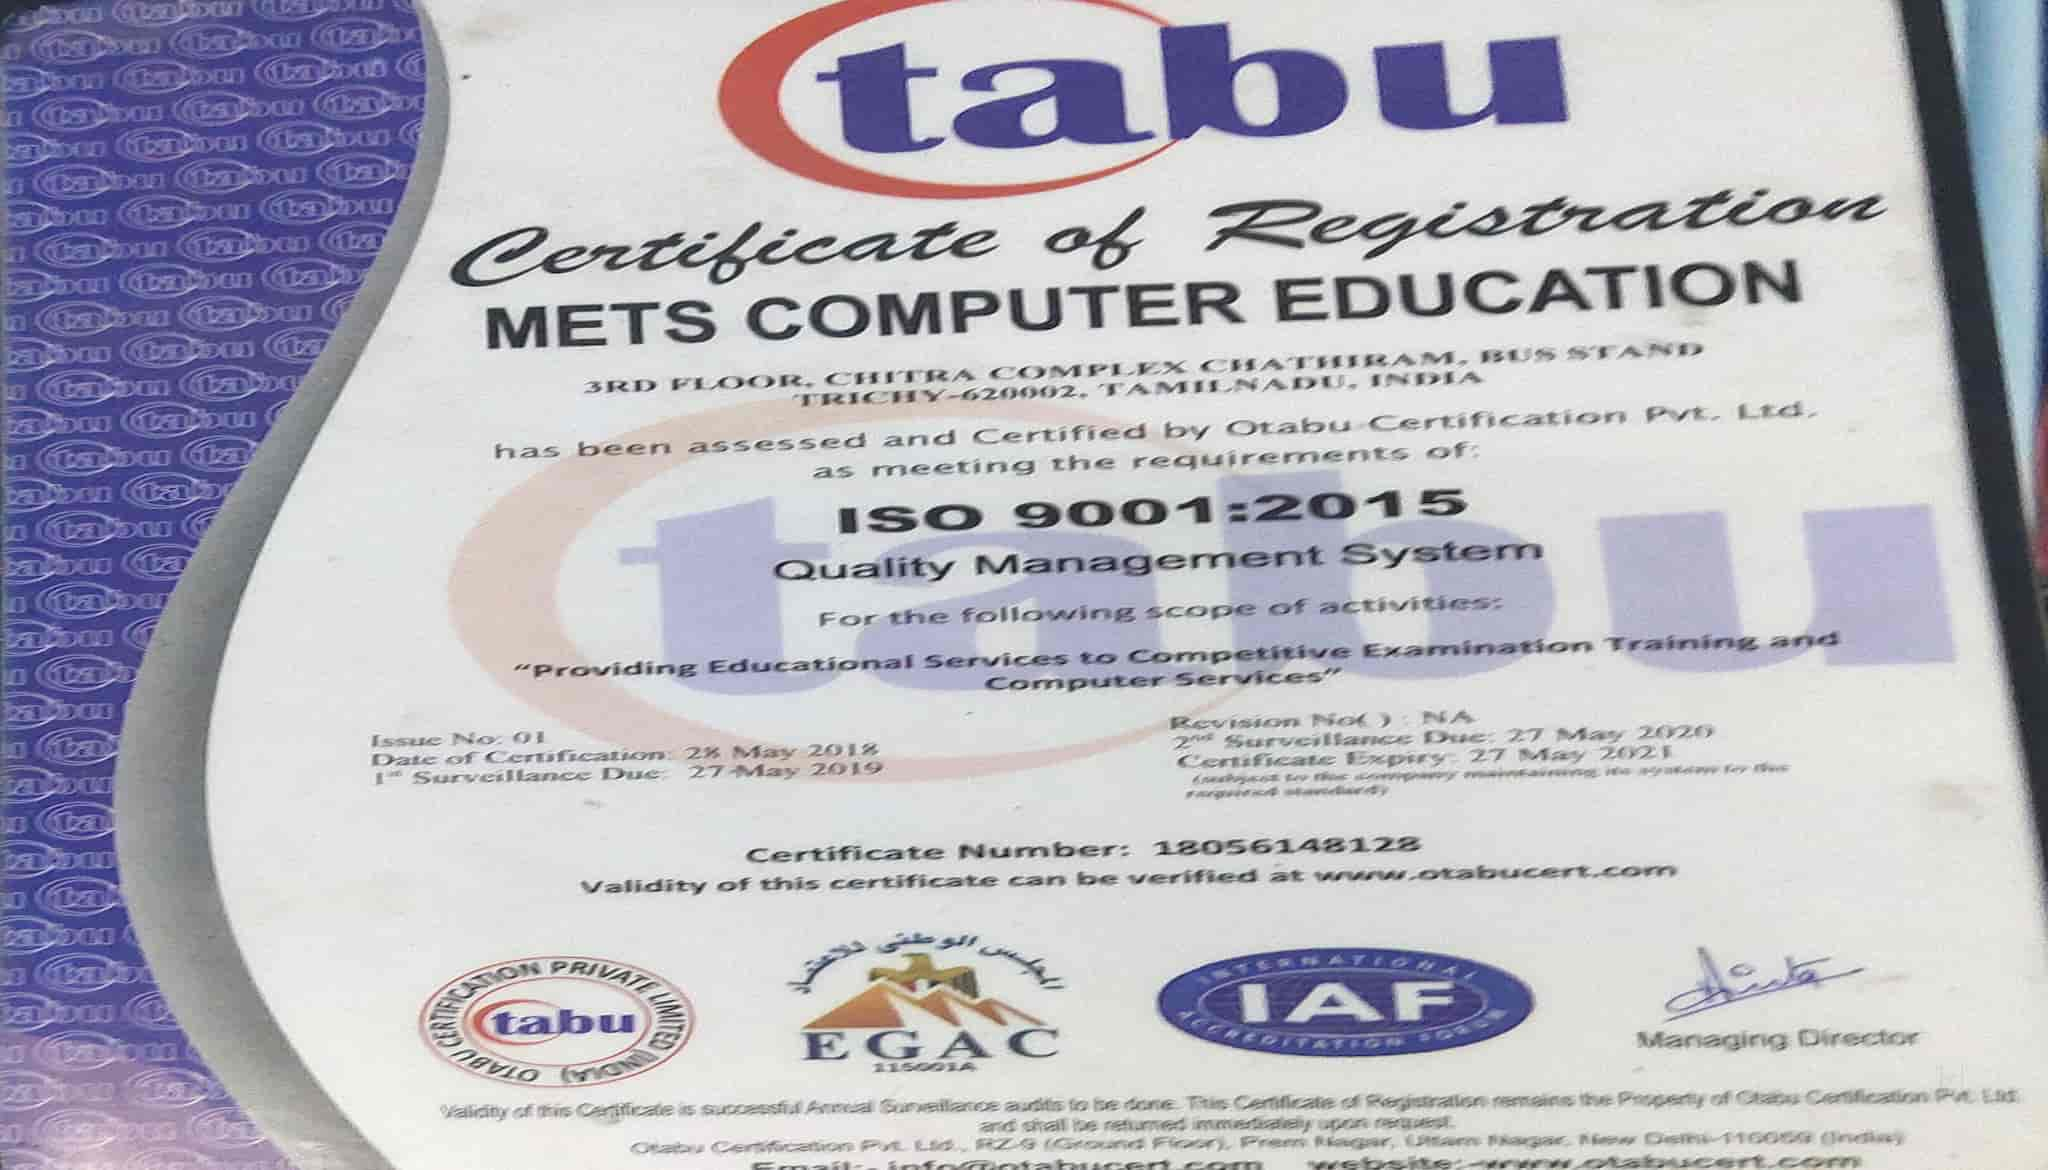 Mets Computer Education, Chathiram Bus Stand - AUTOCAD